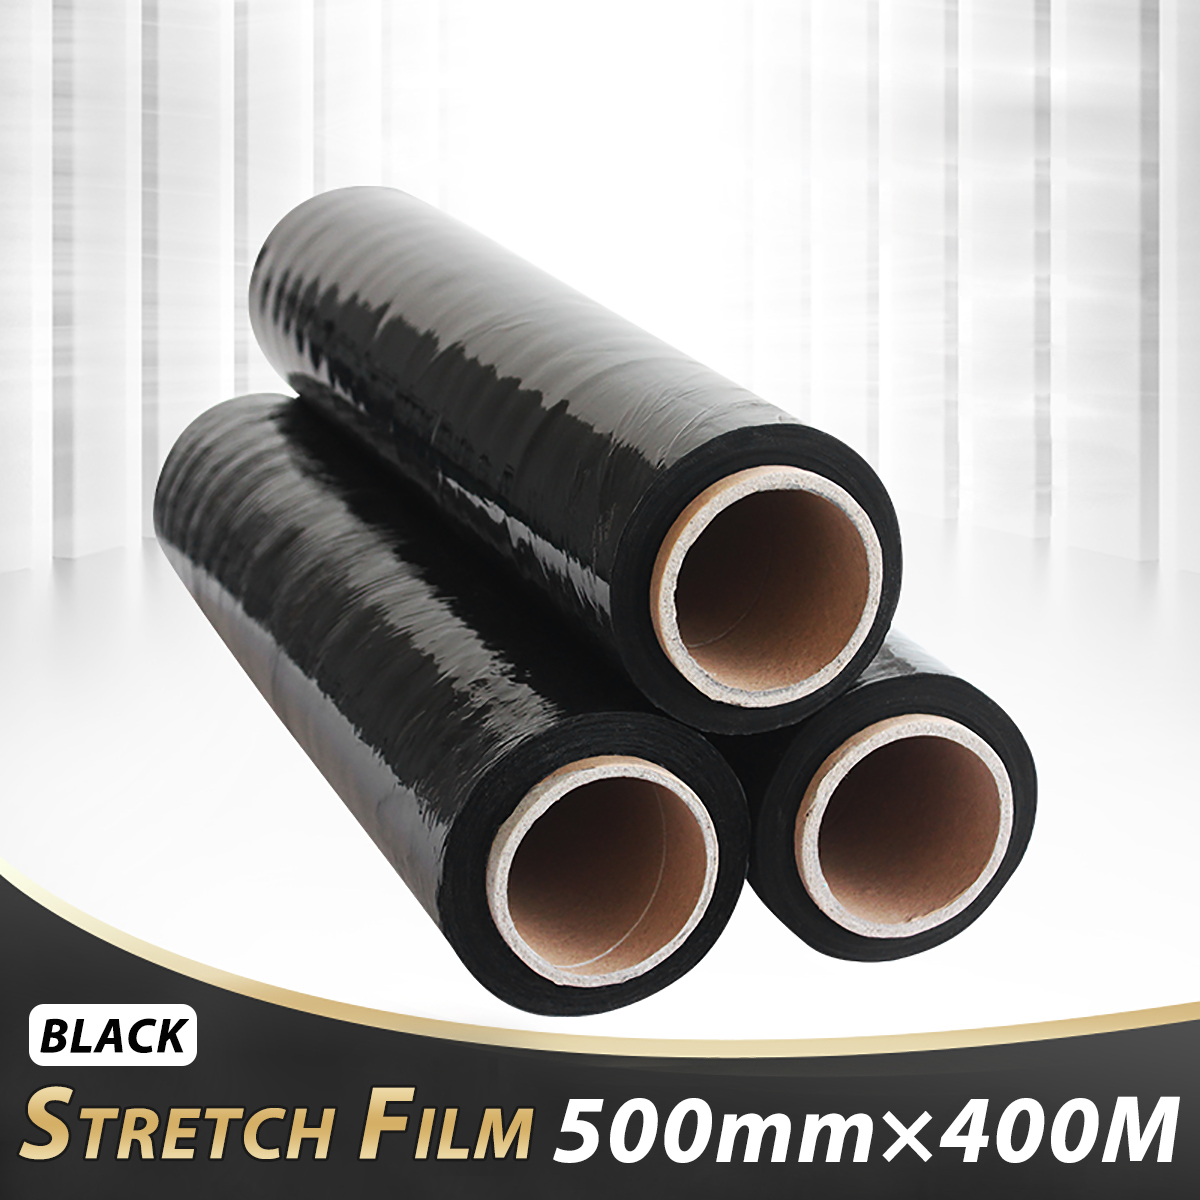 1Pcs 500mmx400M Black Stretch Film PE For Carton Pallet Shrink Wrap Packing накопитель подгузников diaper champ regular цвет bronze белый бронза пр нидерланды